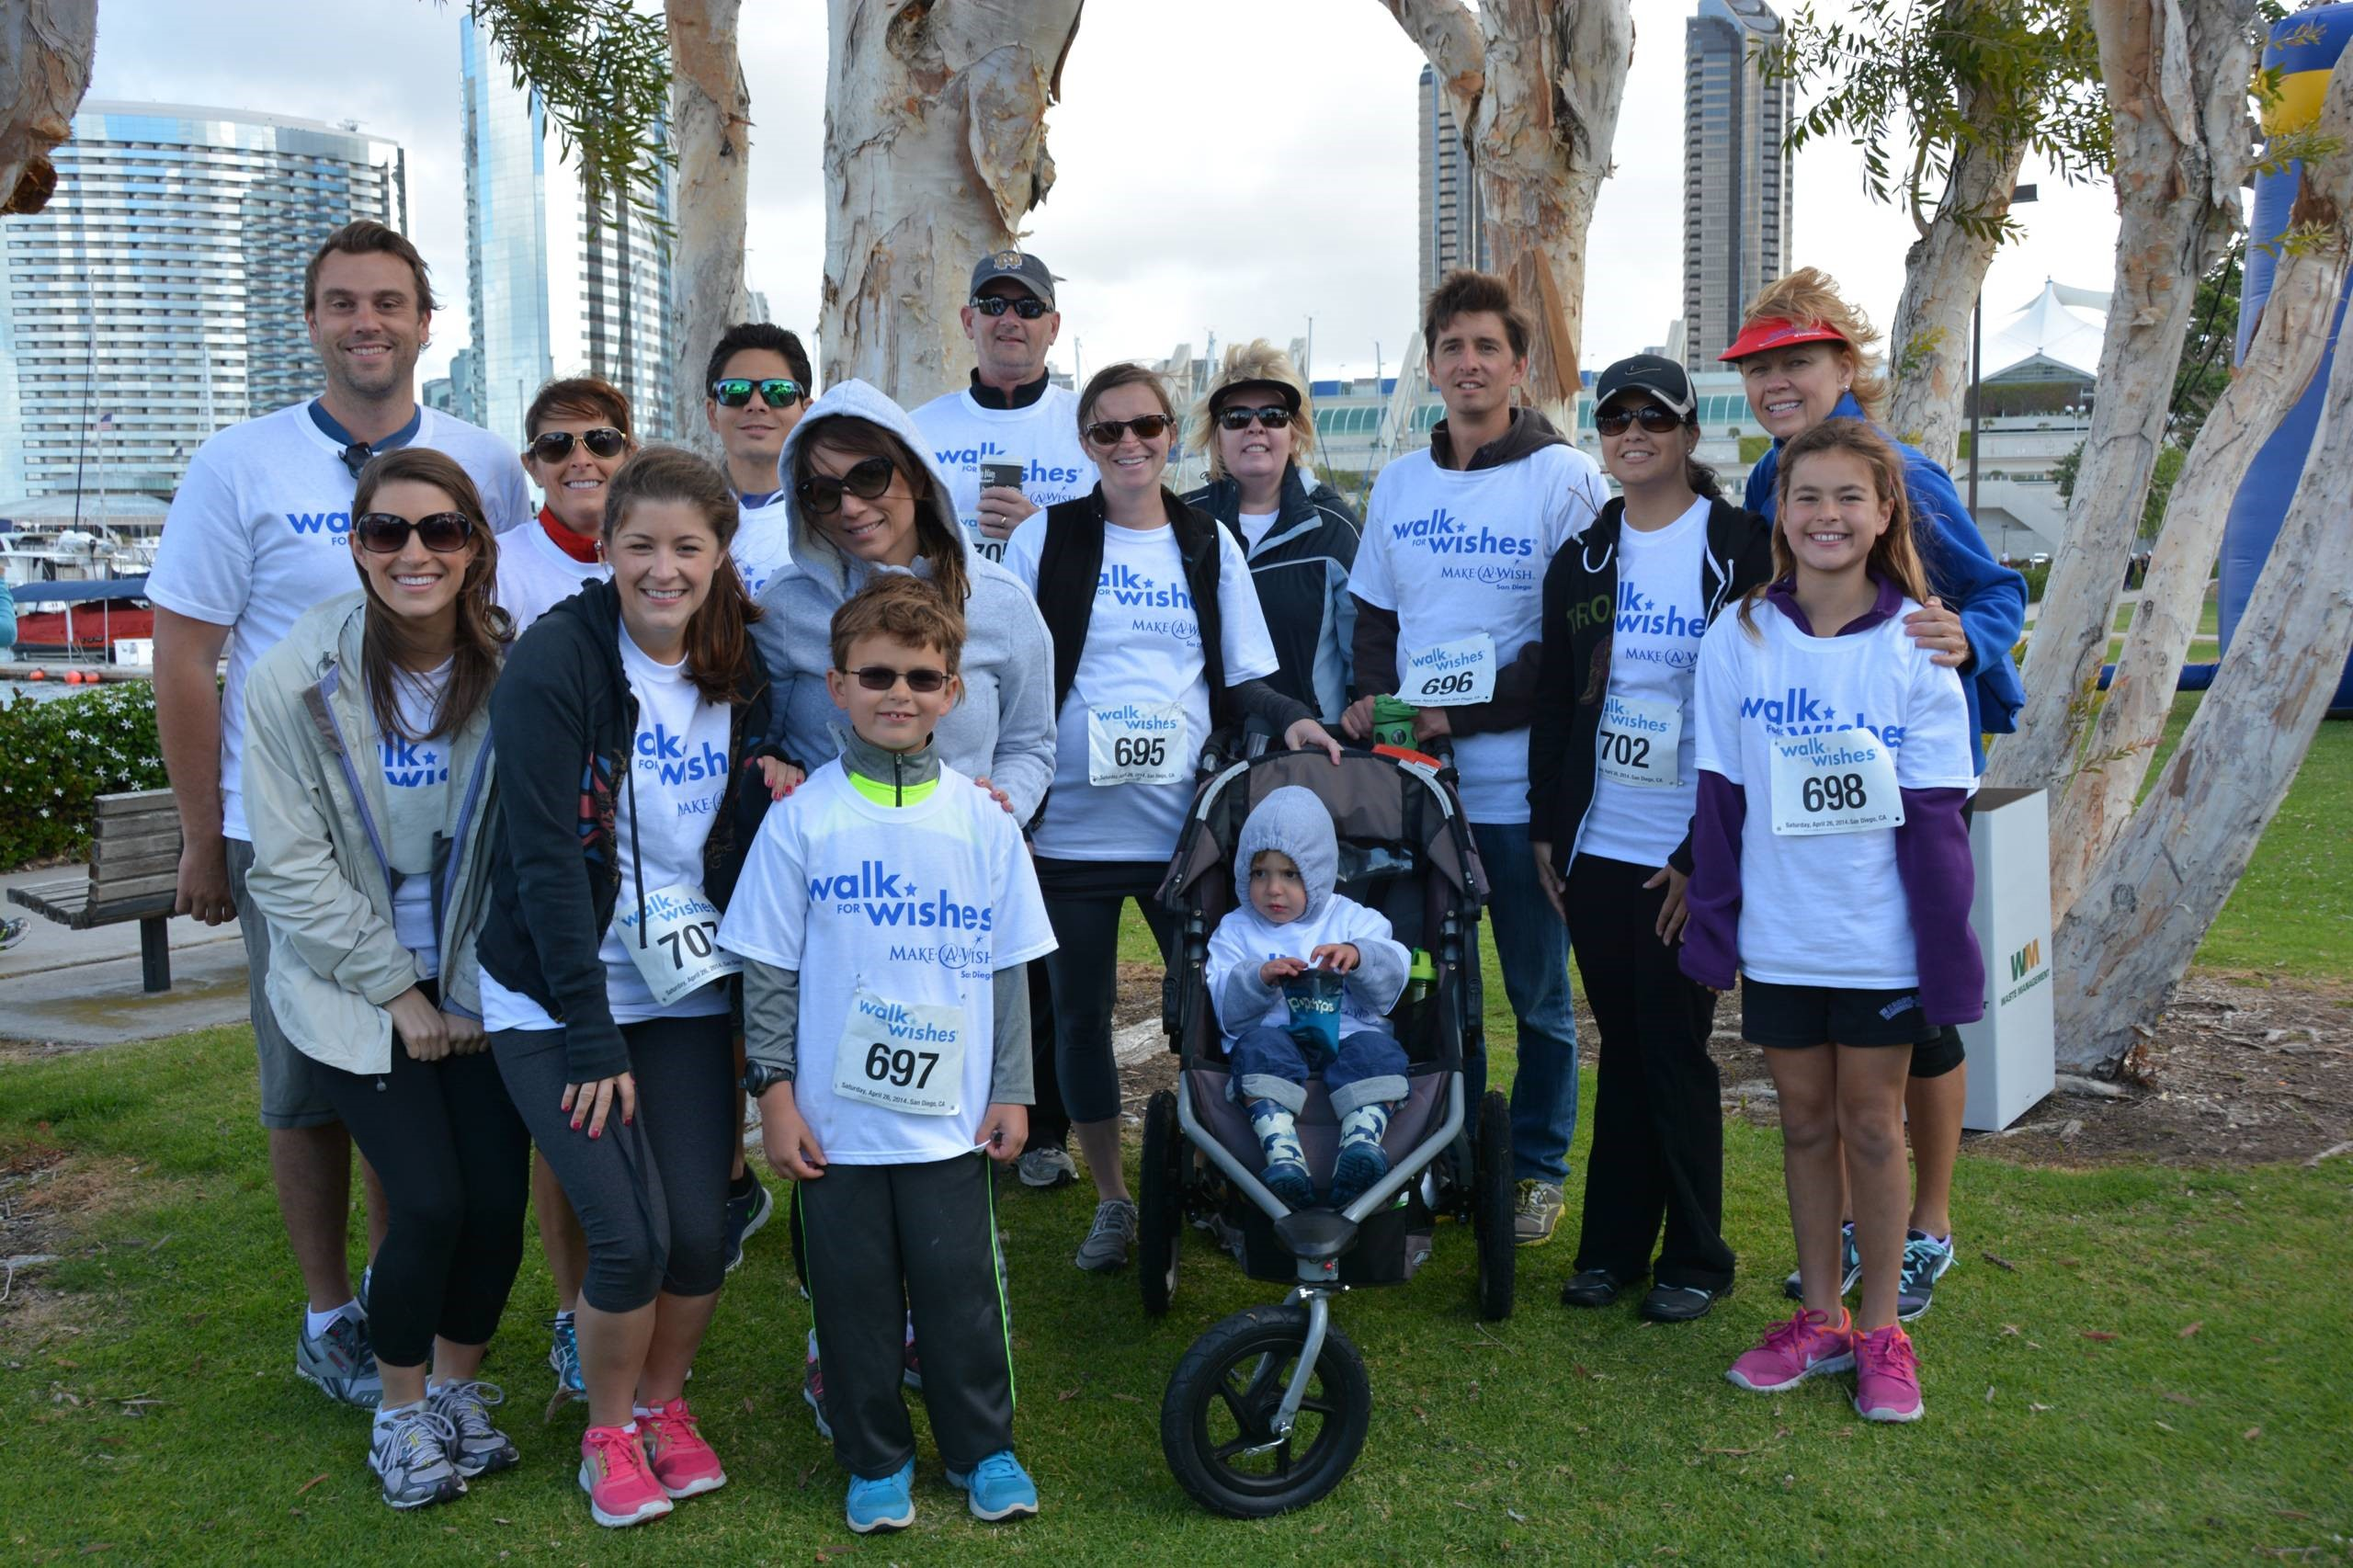 Team WTK Wish Granters in the 2014 Make-A-Wish Walk For Wishes